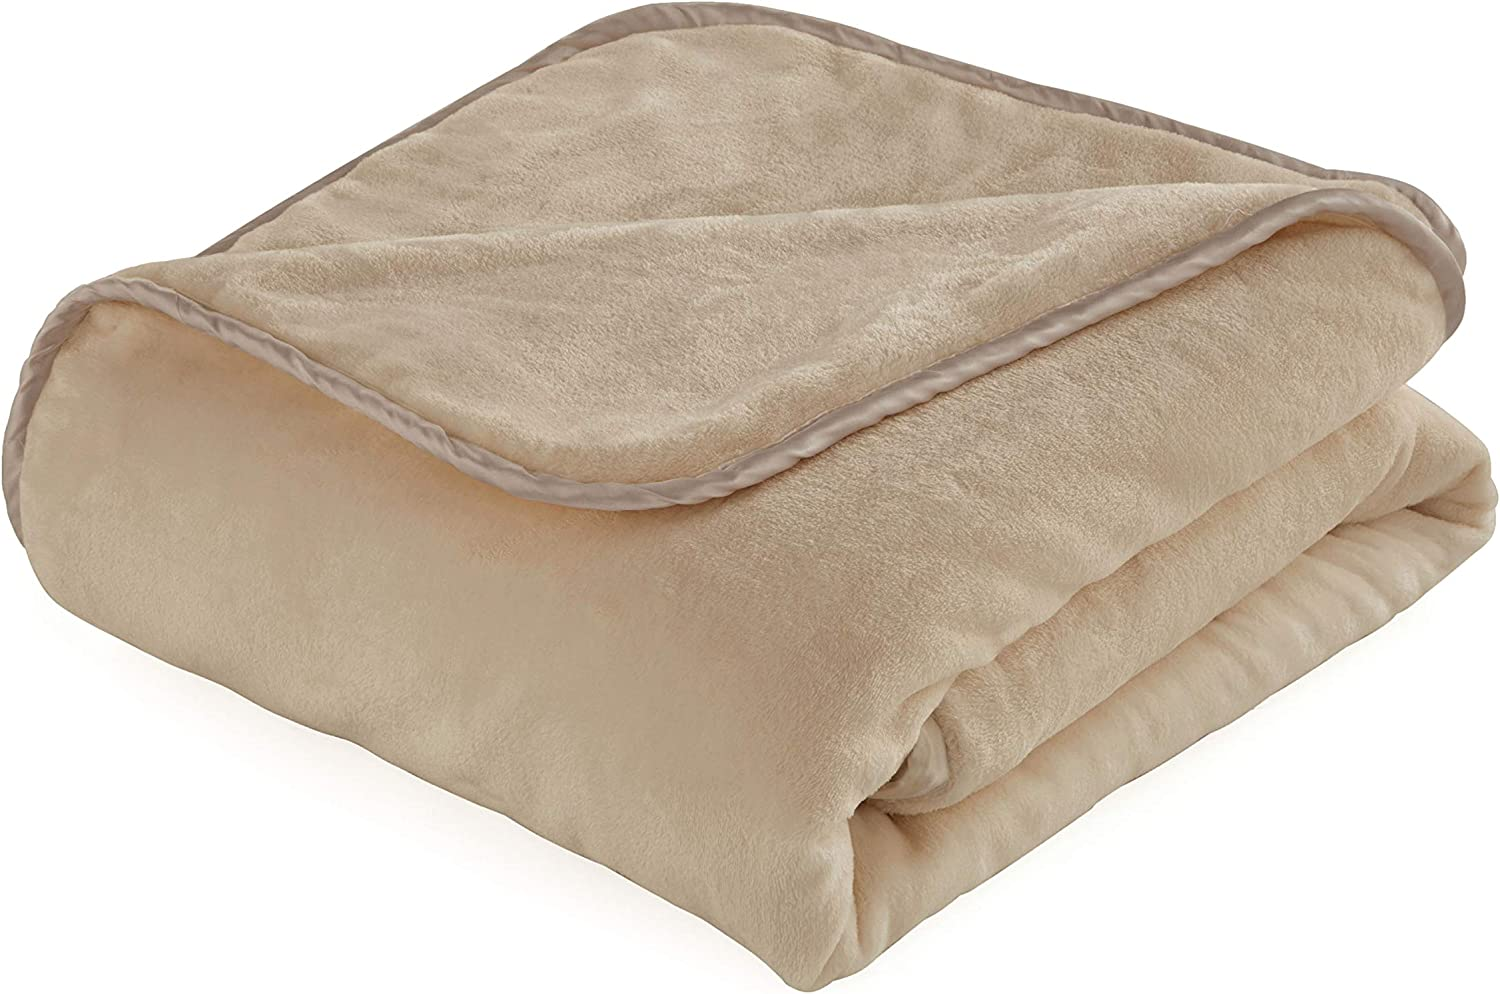 """Vellux Weighted Blanket, 60"""" W x 80"""" L 15 Lbs, Camel"""